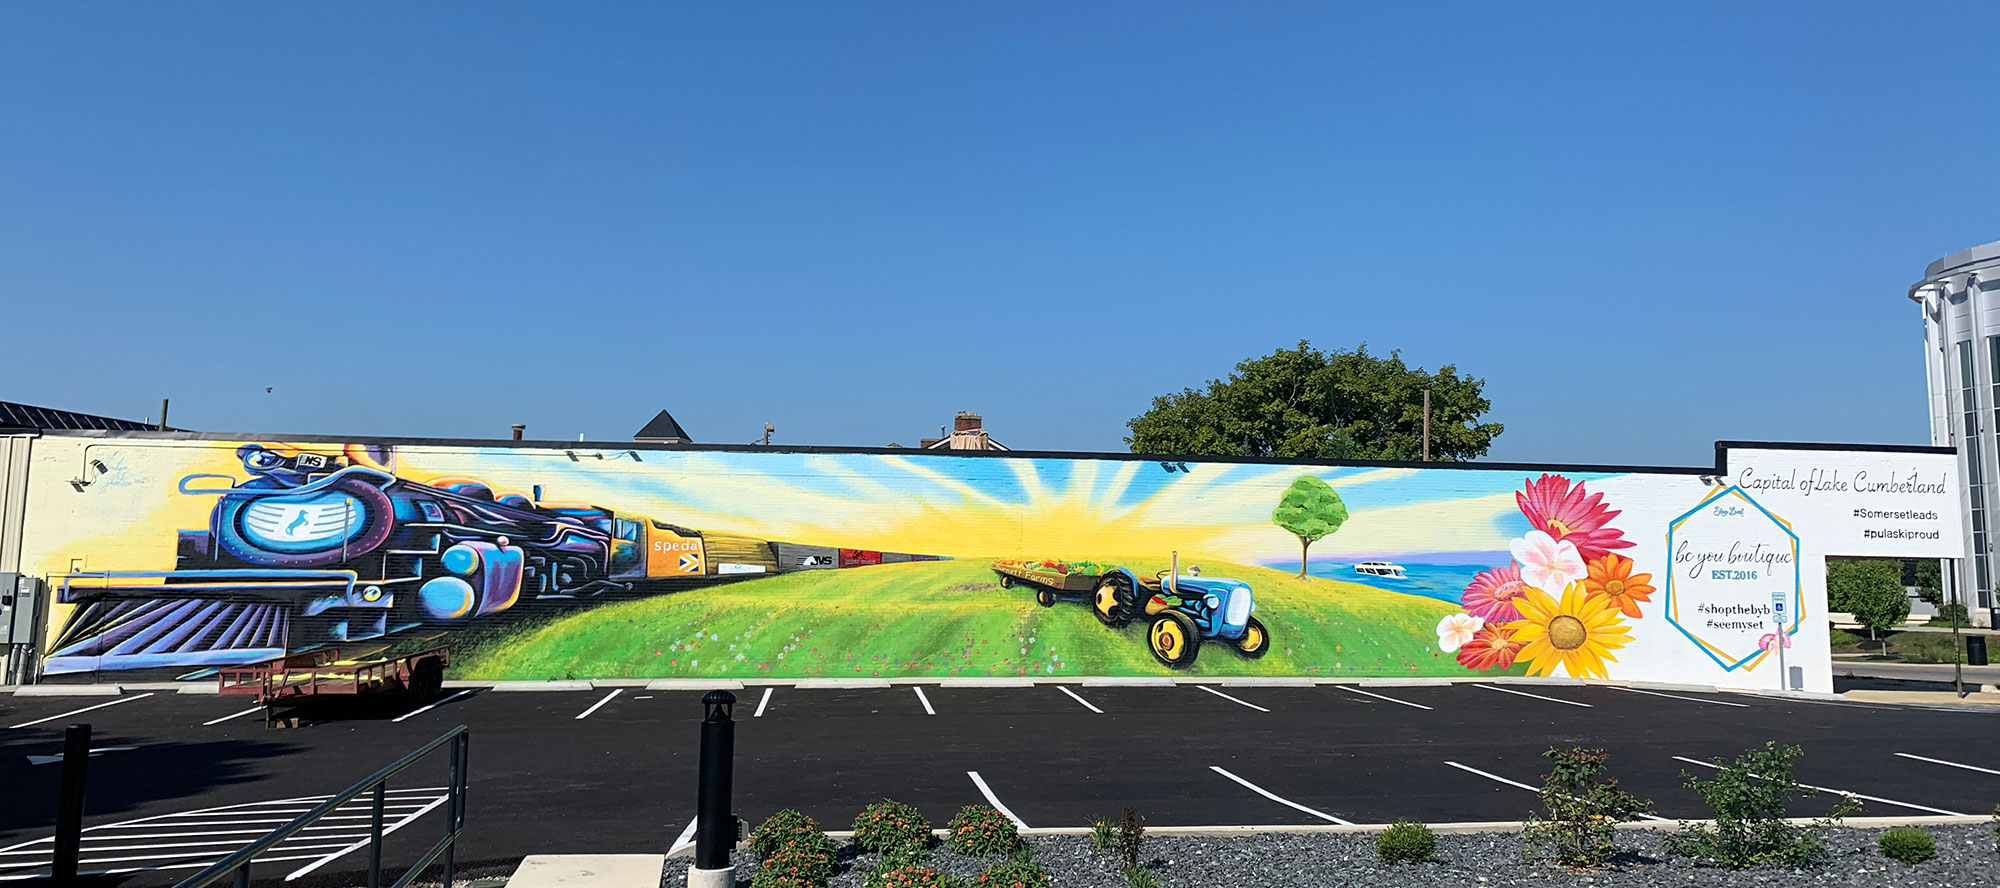 mural painted on side of building with train lake and tractor